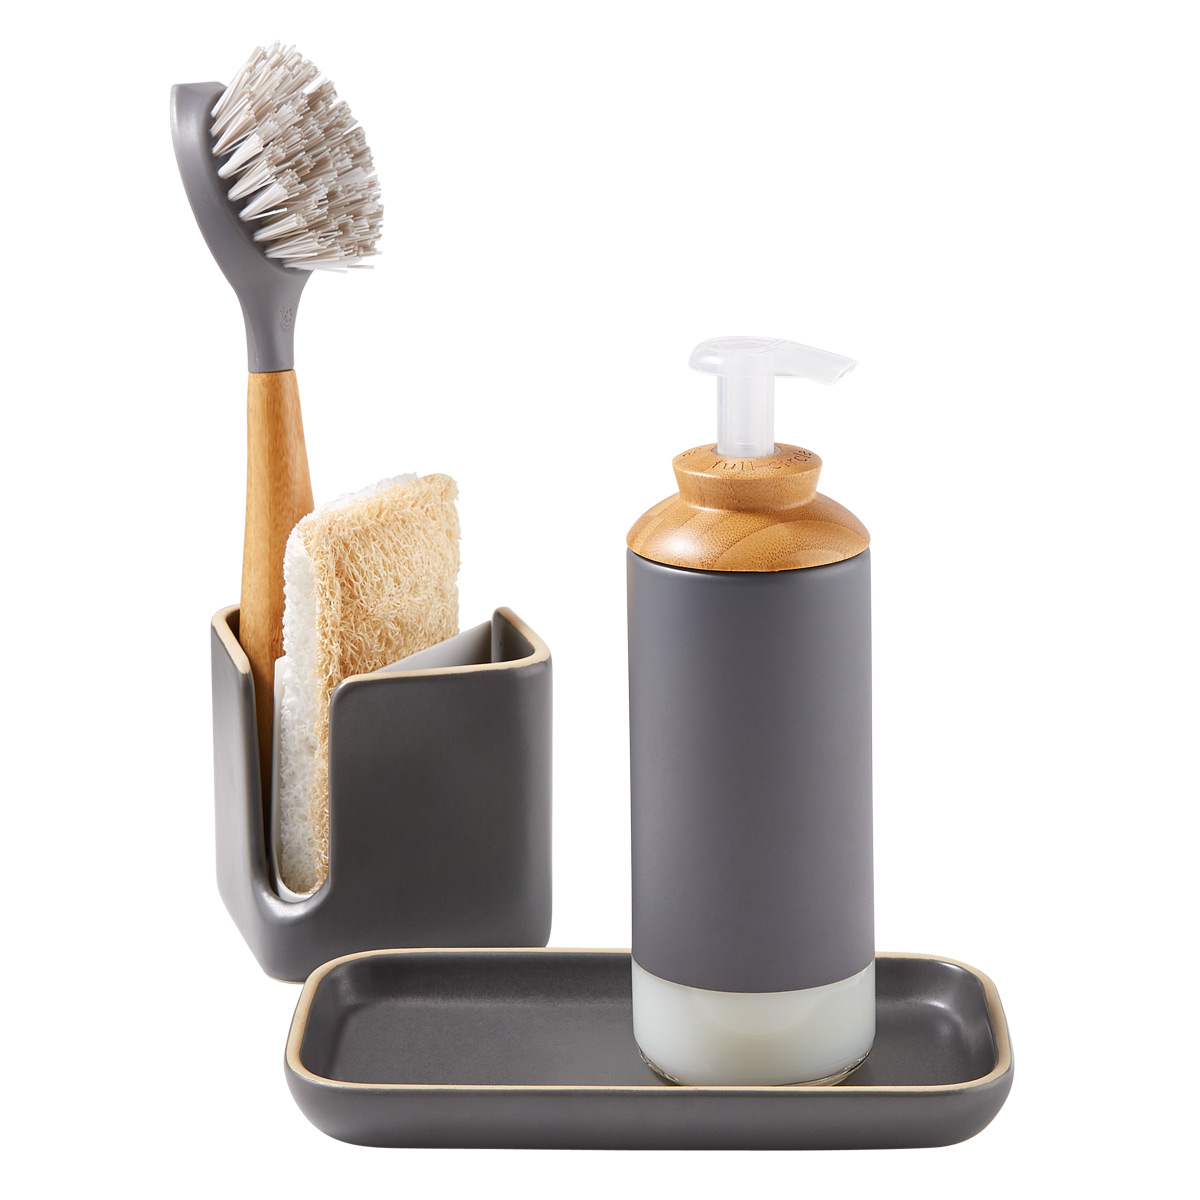 Full Circle Modular Ceramic Sink Caddy The Container Store